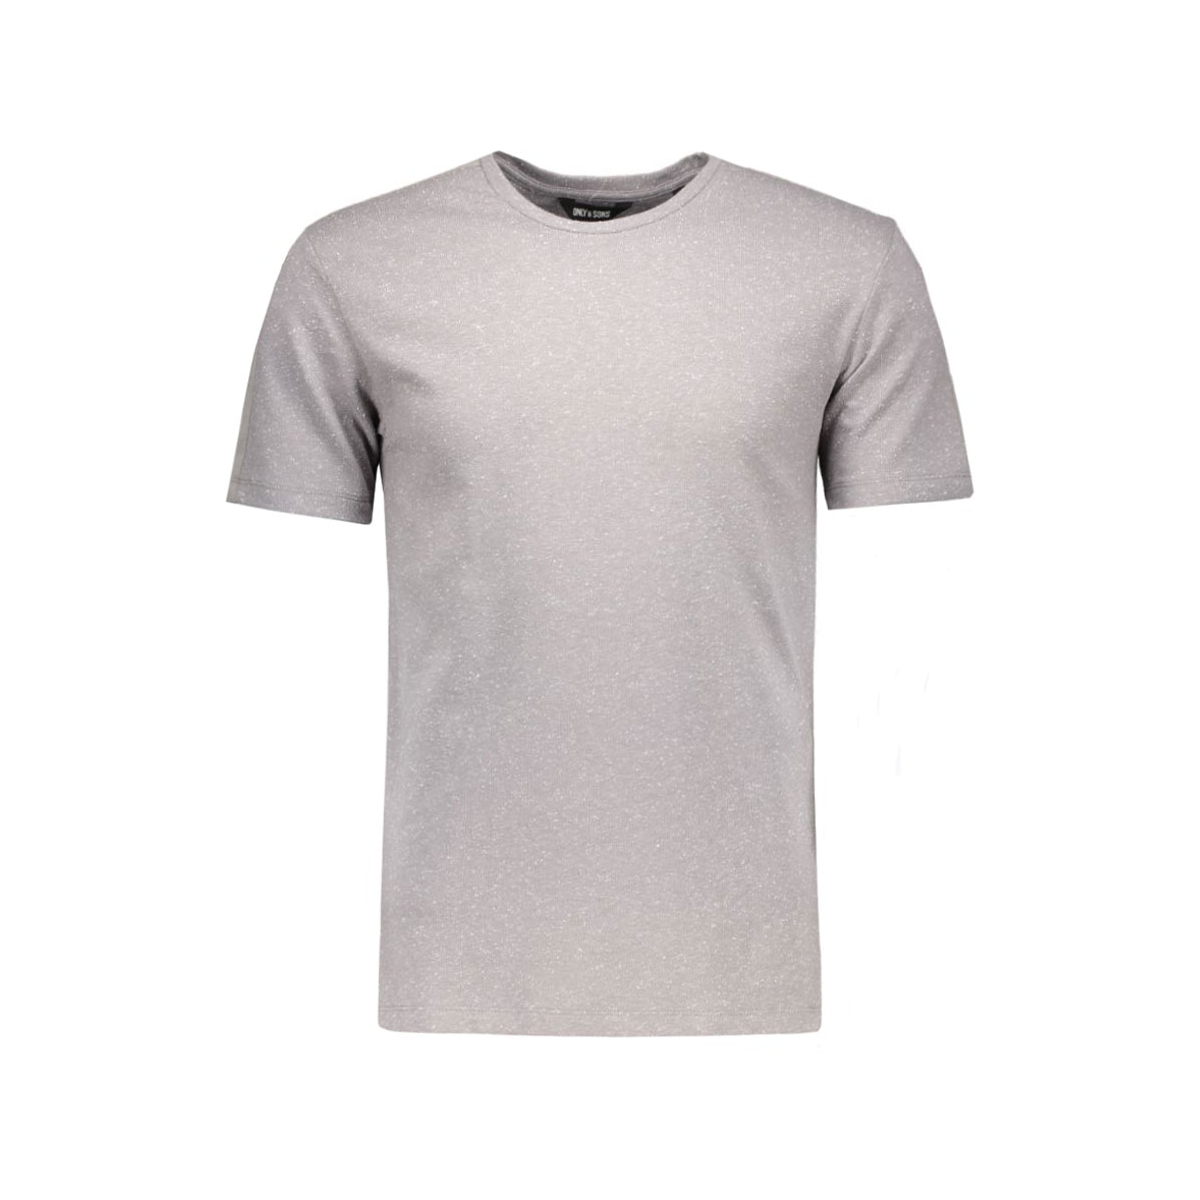 onsniels fitted tee 22004125 only & sons t-shirt medium grey melange